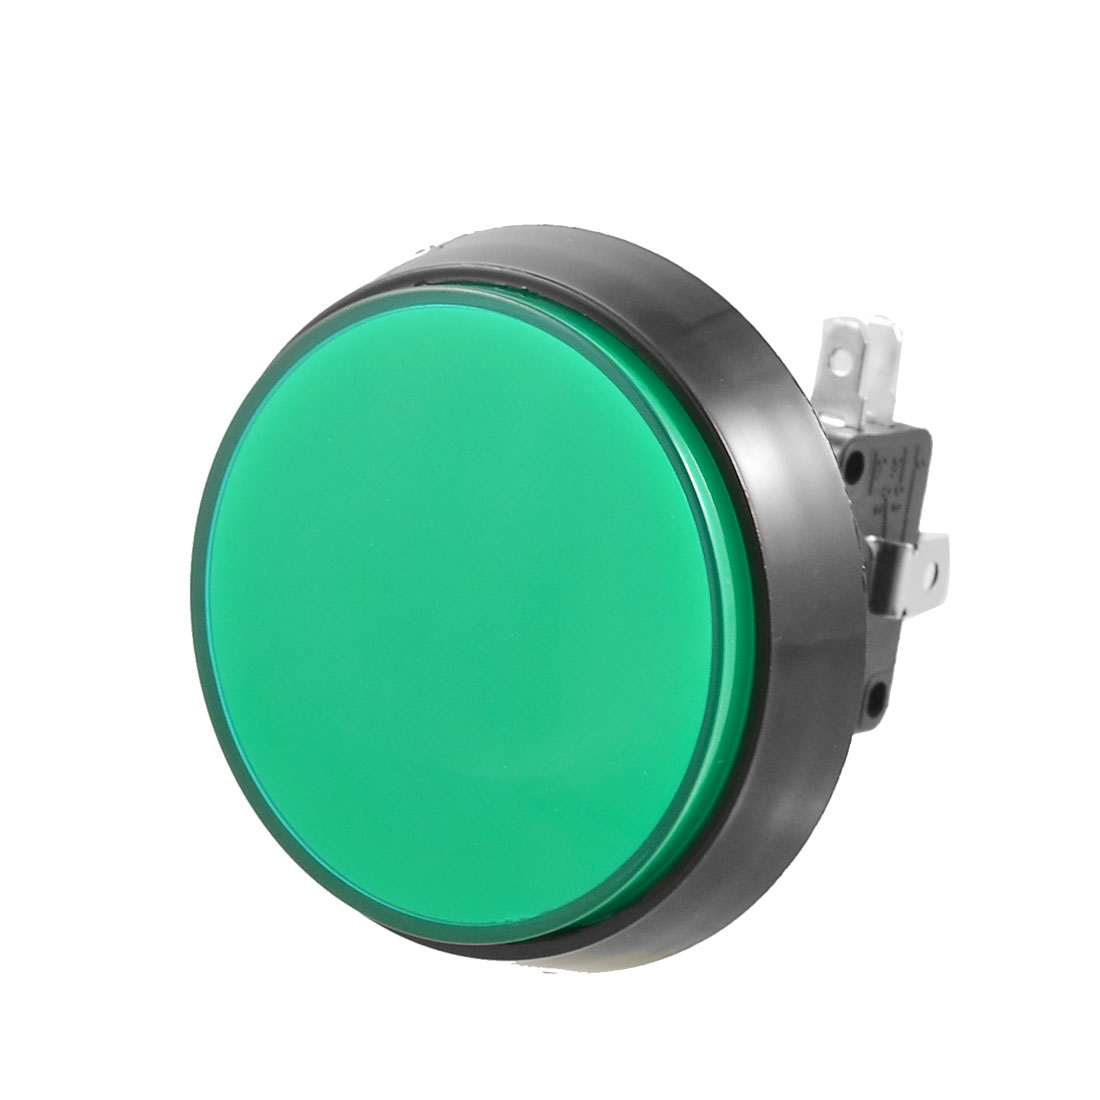 Arcade Game AC 250V 15A 50mm Dia Circular Push Button Green + Micro Switch